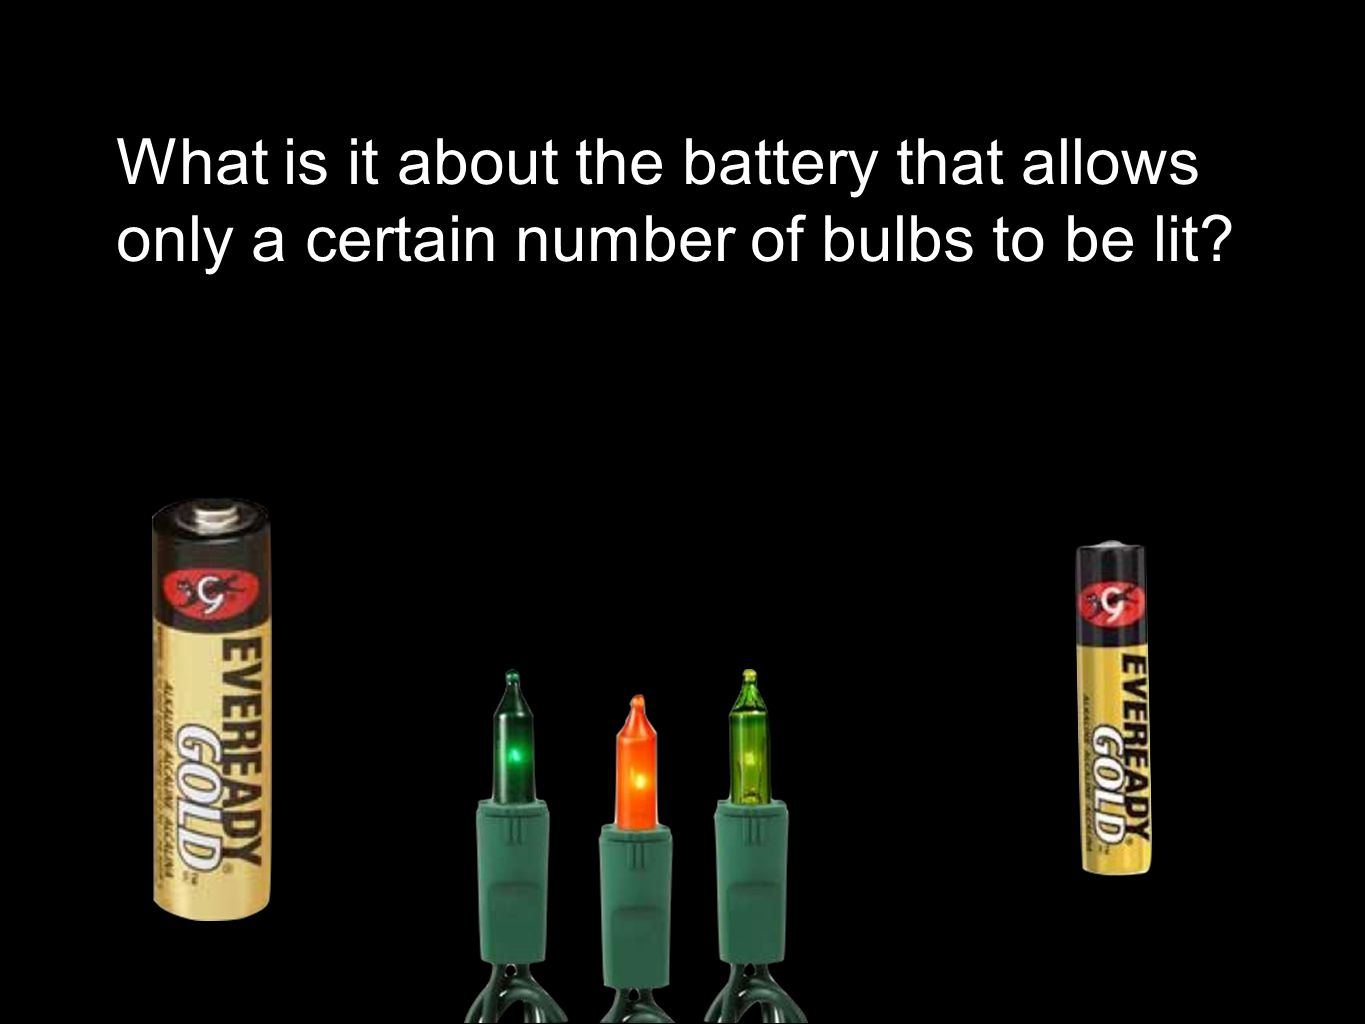 What is it about the battery that allows only a certain number of bulbs to be lit